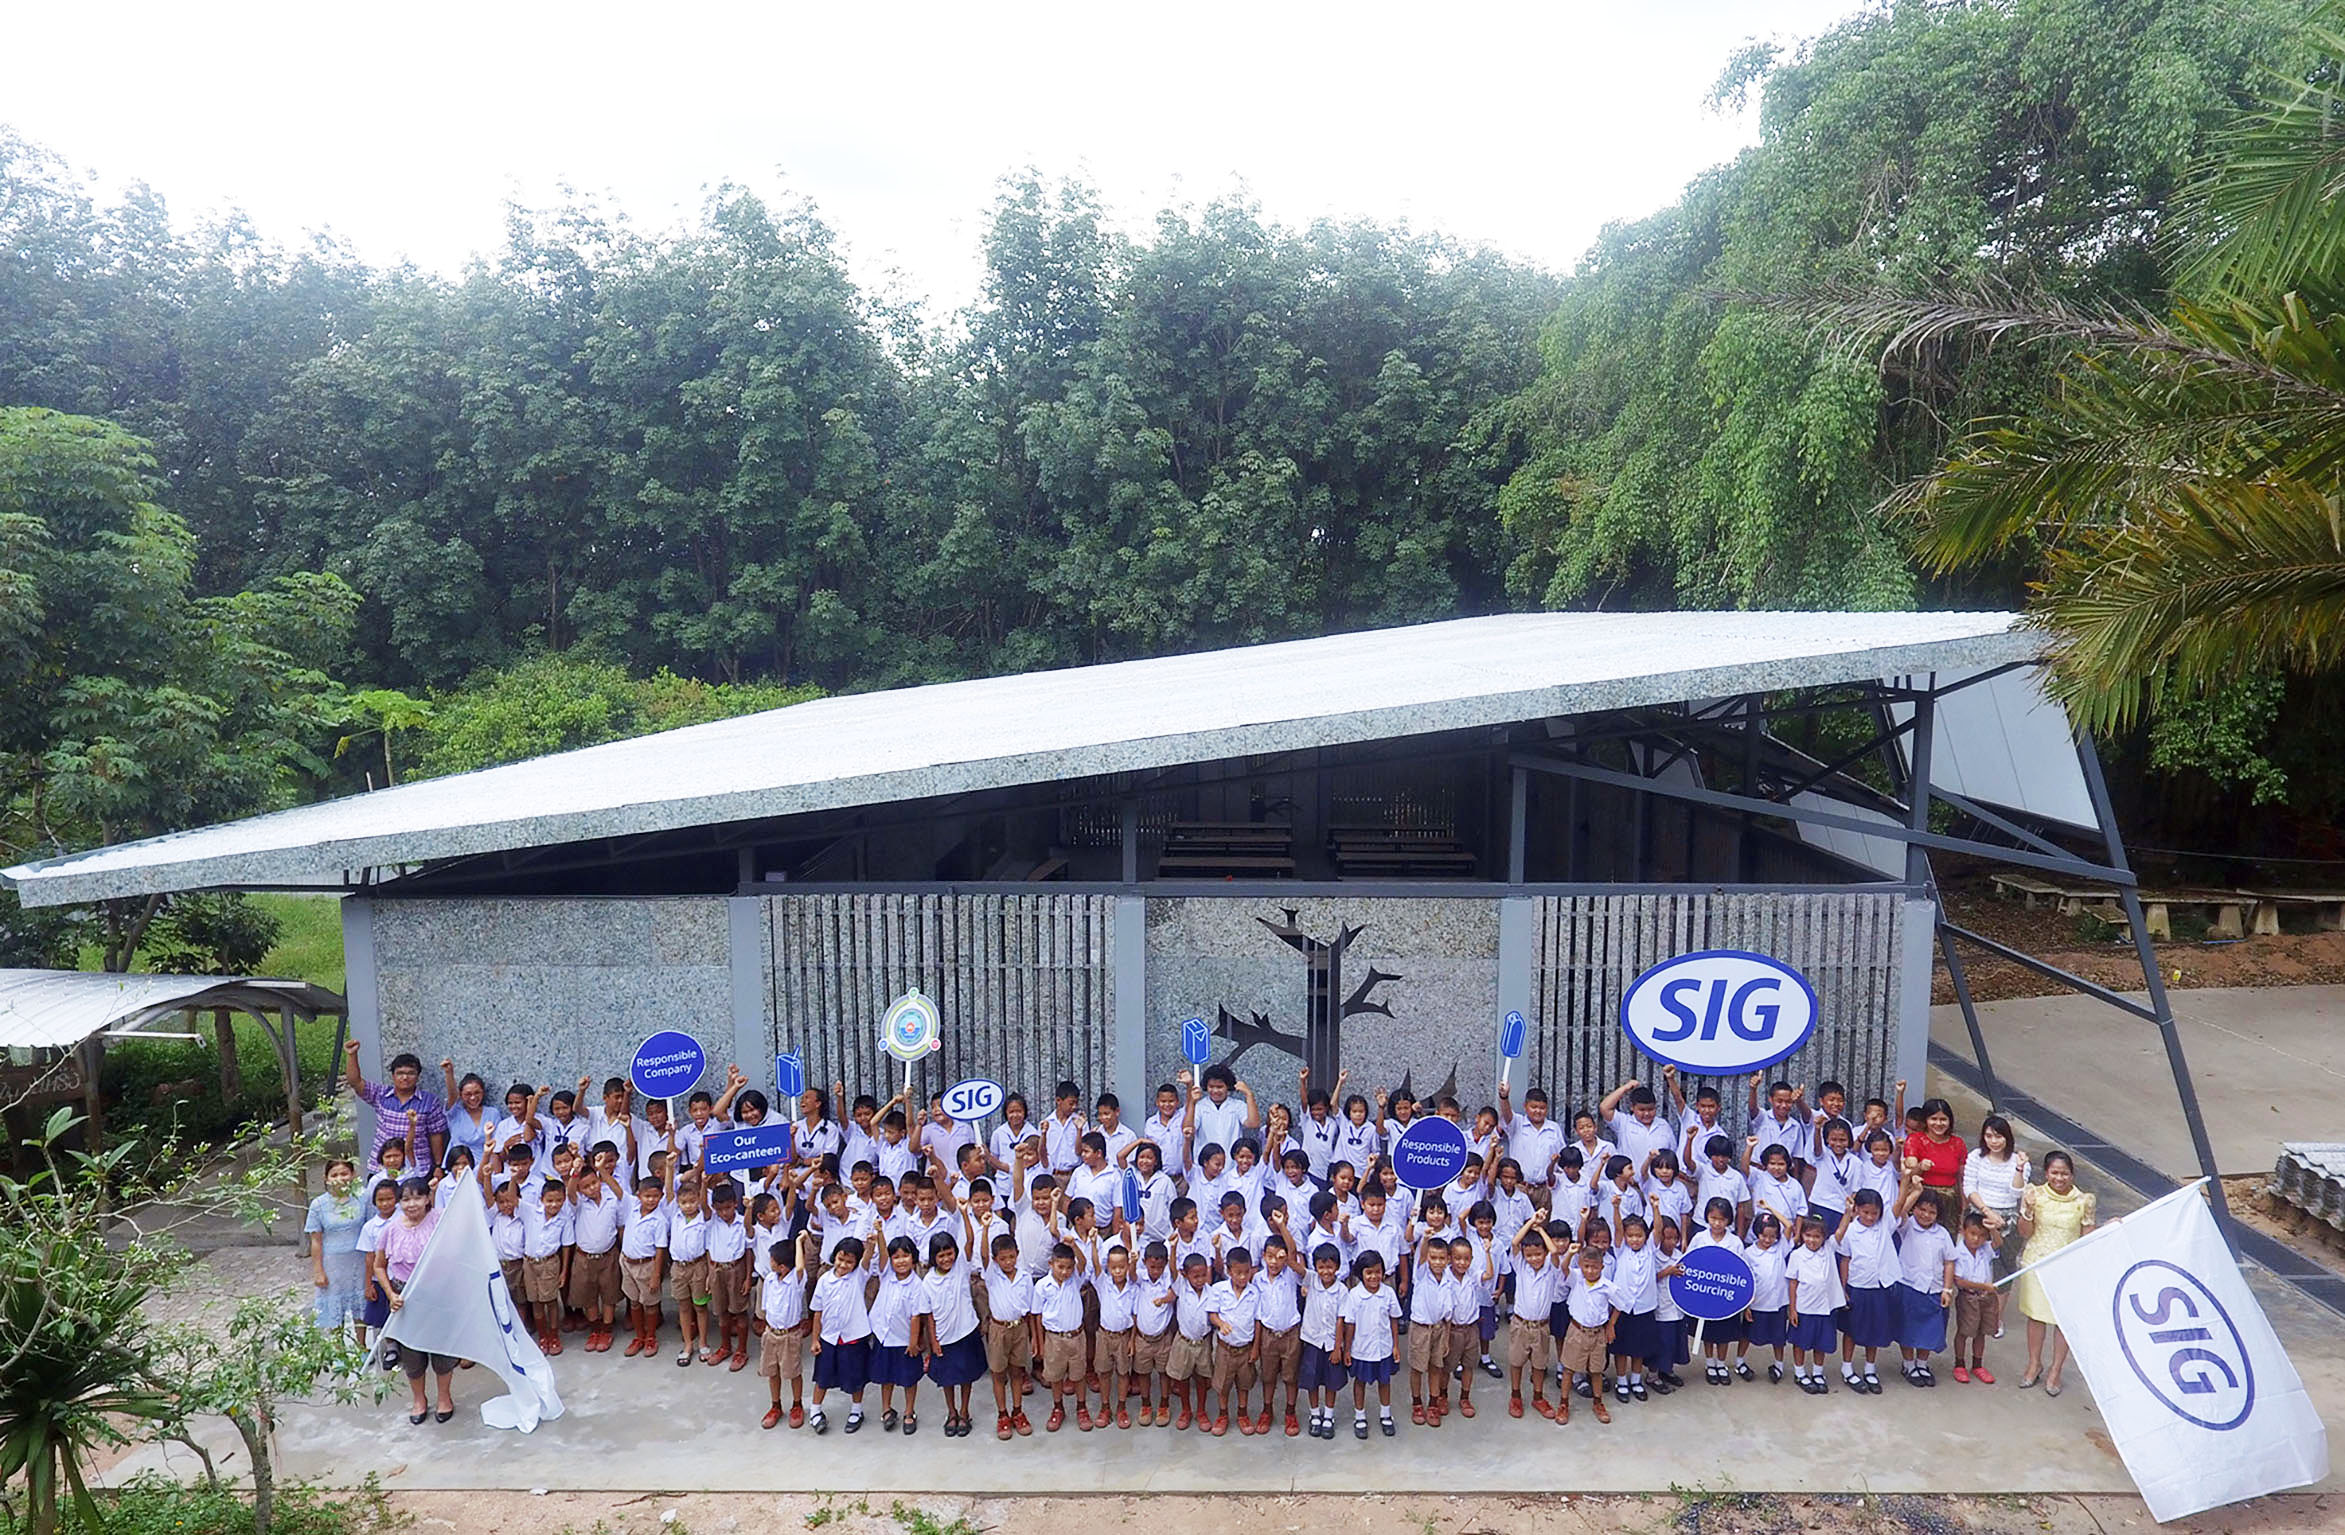 SIG is showcasing how companies and communities can come together to turn waste into value through an innovative 'eco-canteen' made almost entirely from used beverage cartons at a school in Thailand.